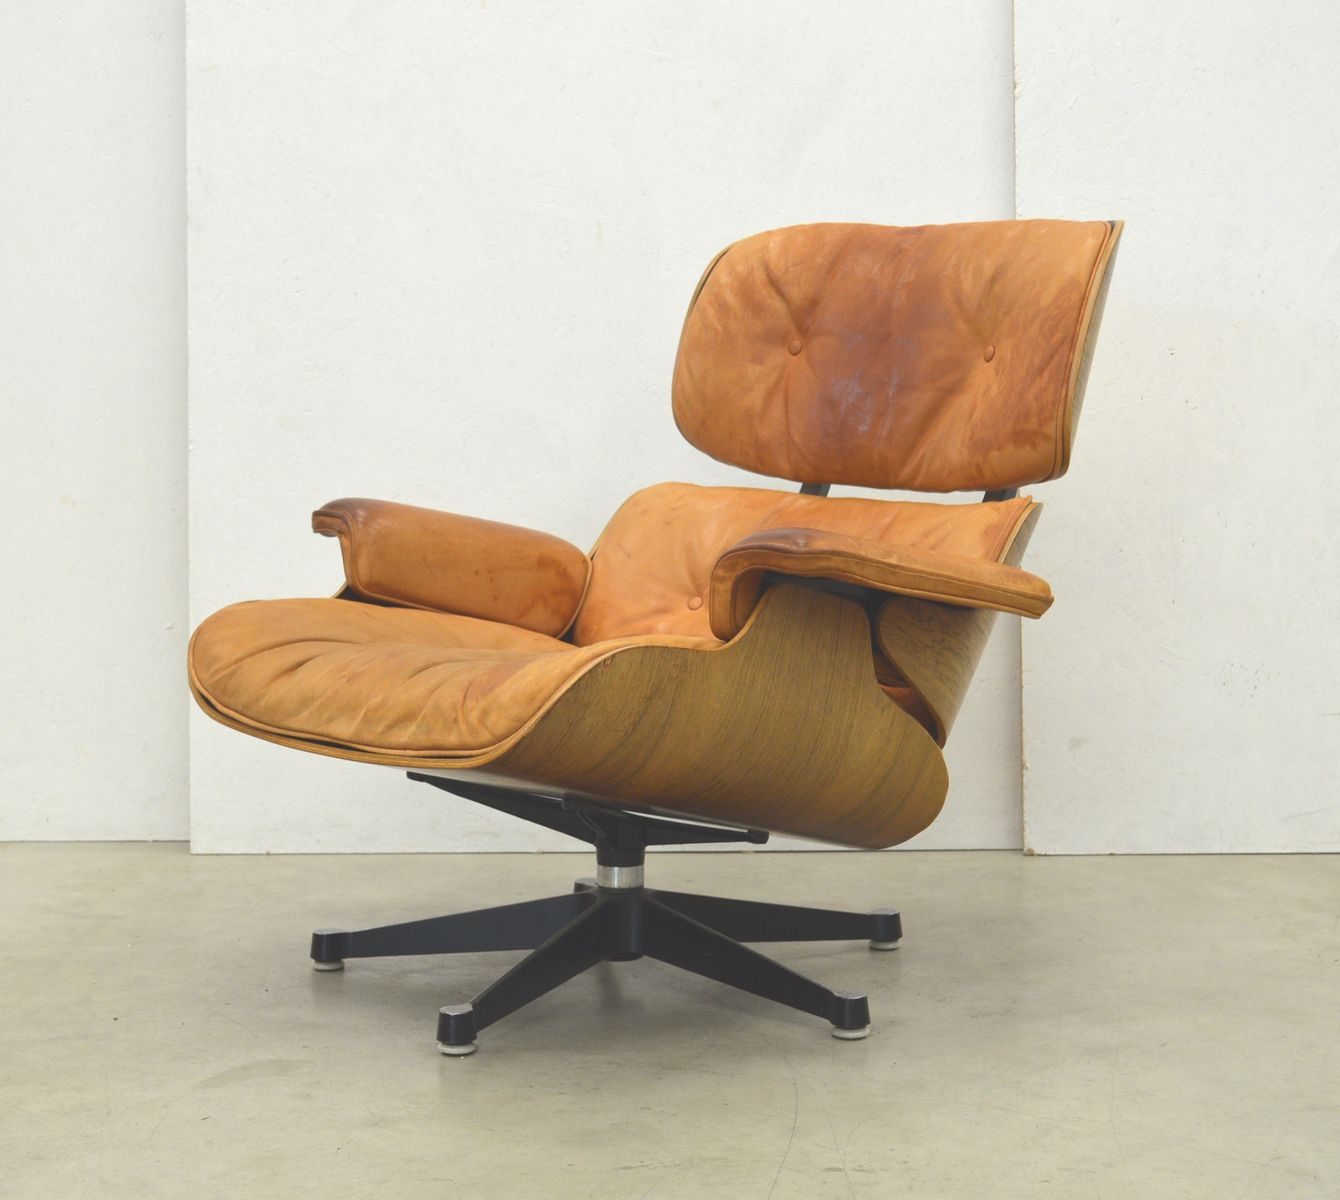 rosewood lounge chair ottoman by charles ray eames for herman miller 1970s for sale at pamono. Black Bedroom Furniture Sets. Home Design Ideas